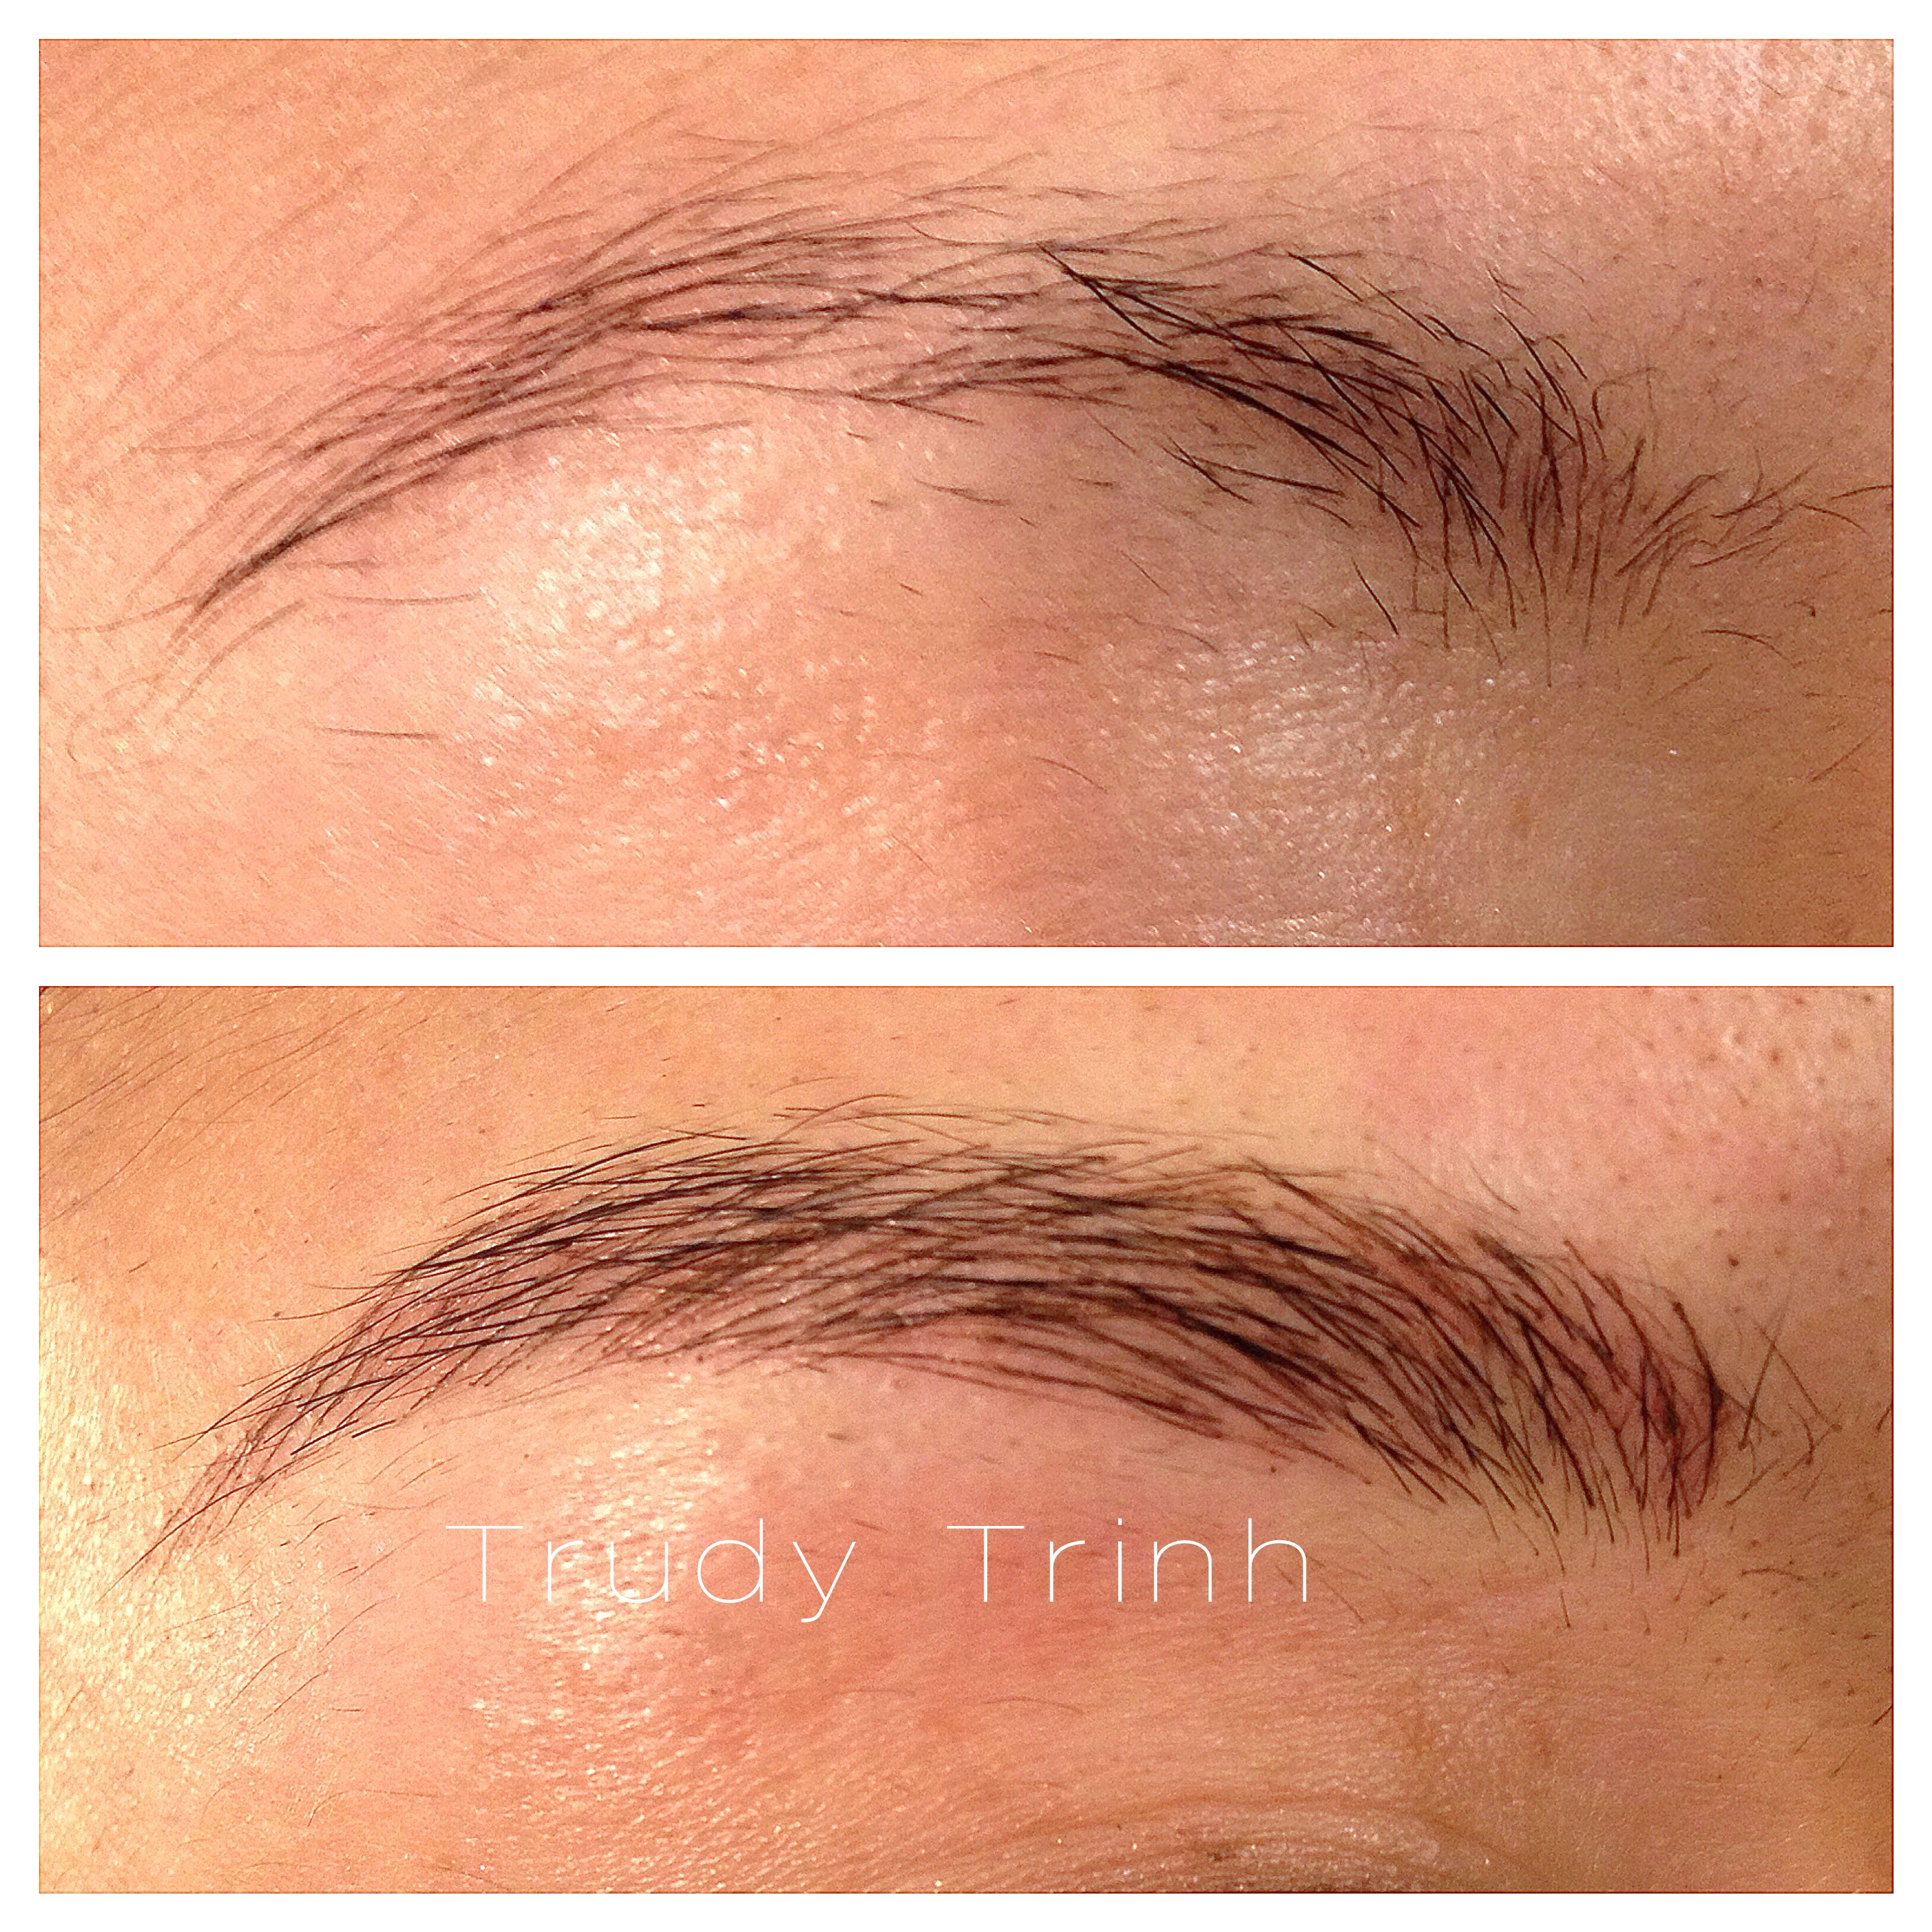 aff8e33bc15 Semi-permanent makeup tattooing by Trudy Trinh in Toronto, Canada.  Specializing in the hairstroke technique for very natural looking eyebrows.